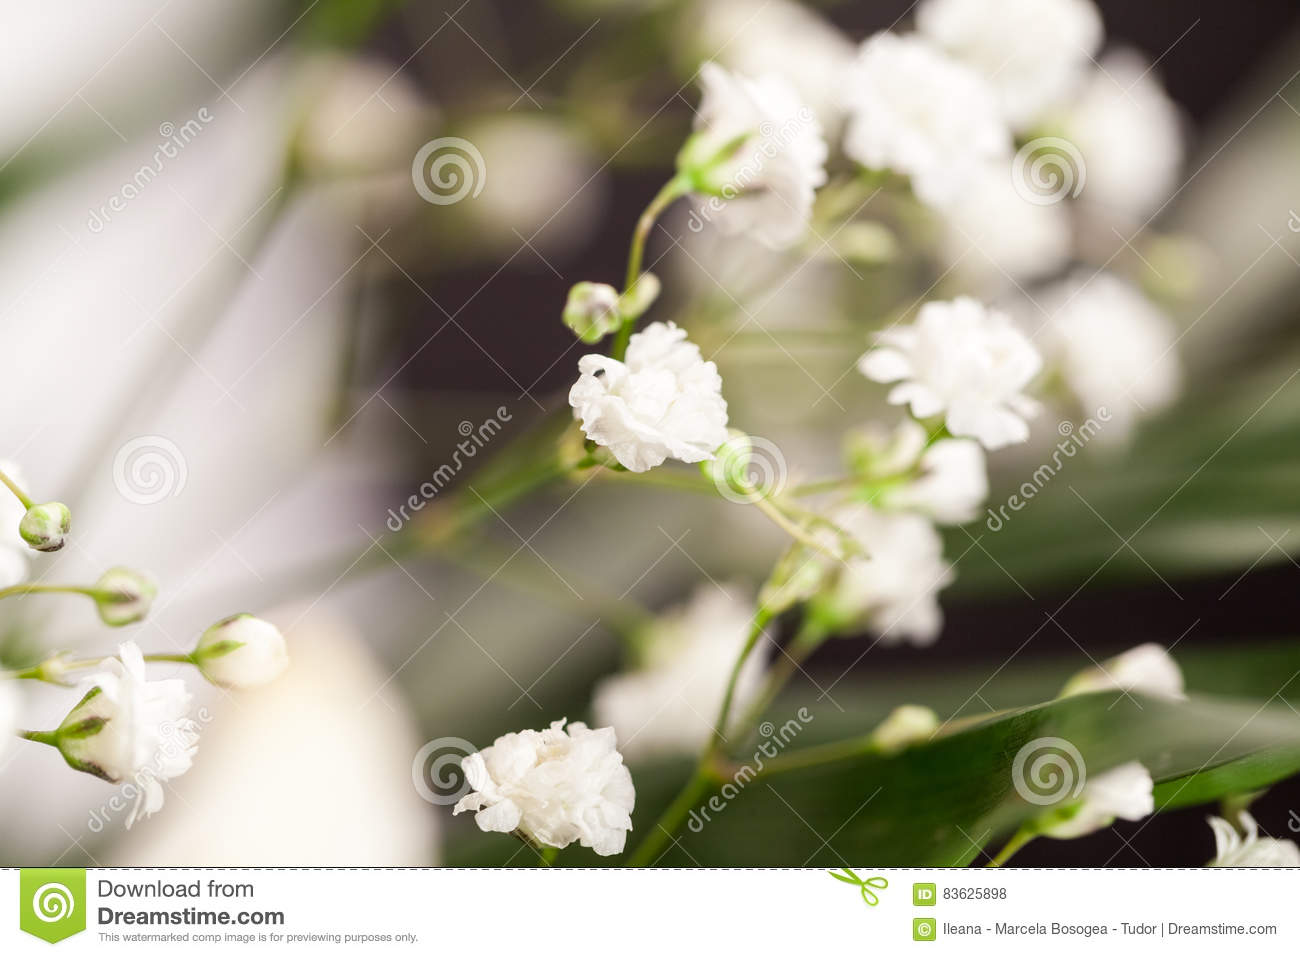 Gypsophila Plant With Small White Flowers Stock Photo Image Of